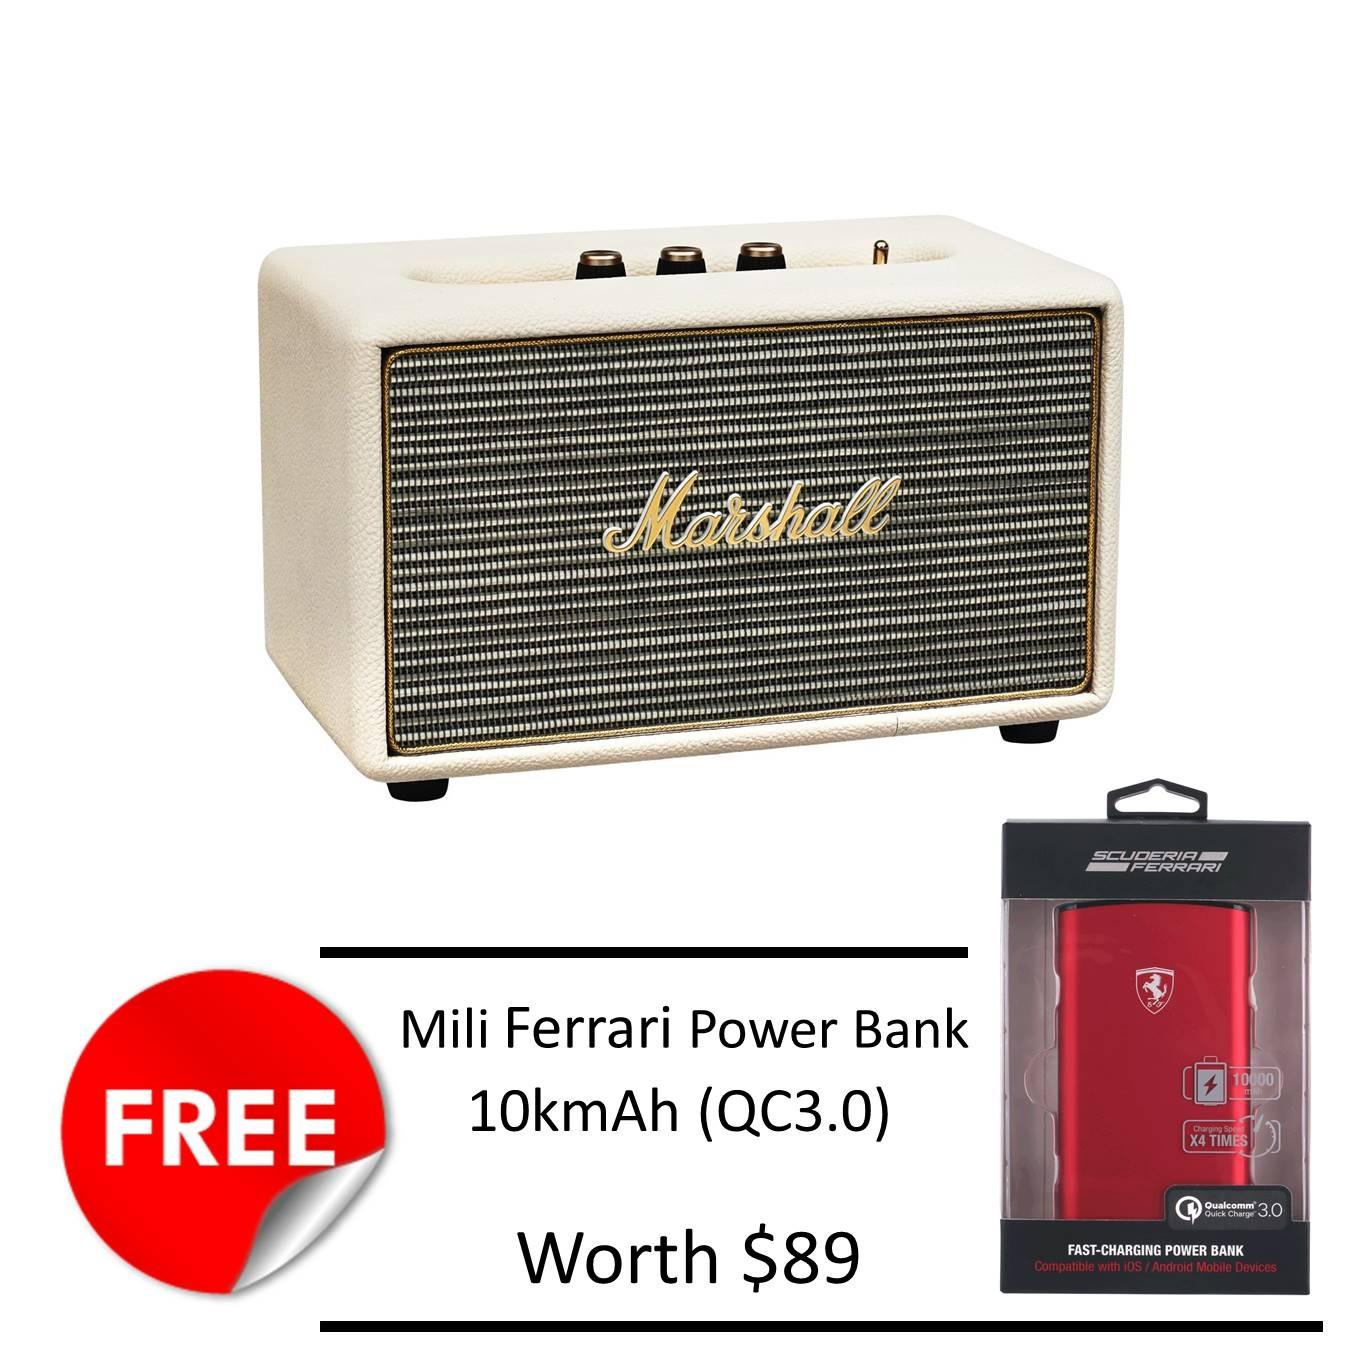 Marshall Stanmore Bluetooth Speaker Cream Free Mili Ferrari 10Kmah Powerbank Discount Code